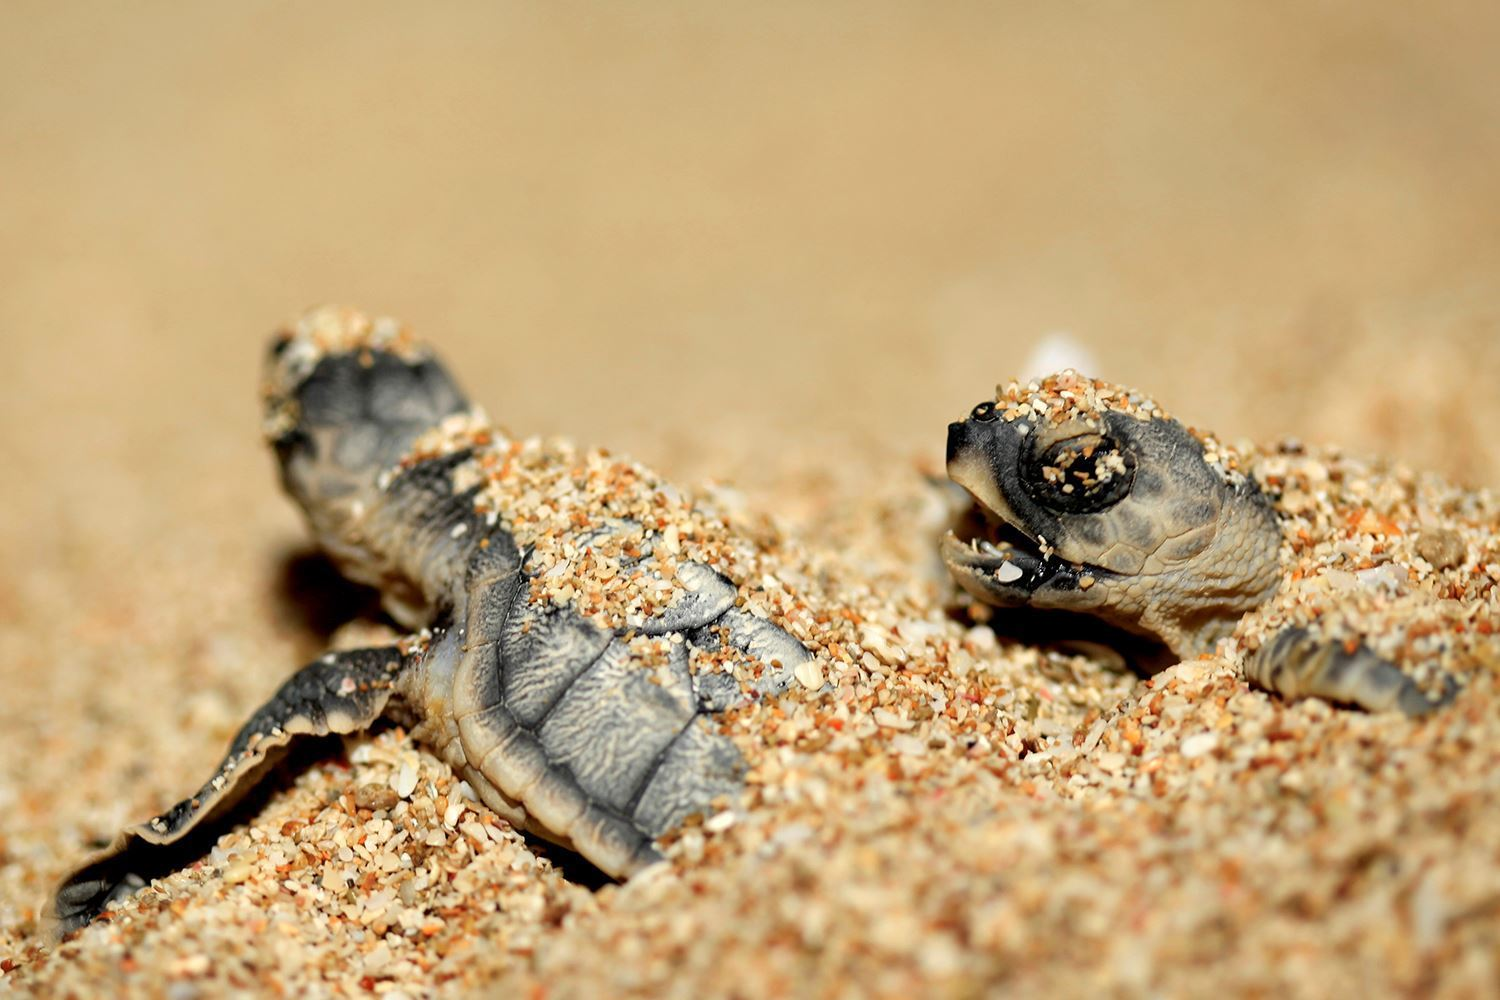 Kish sea turtles